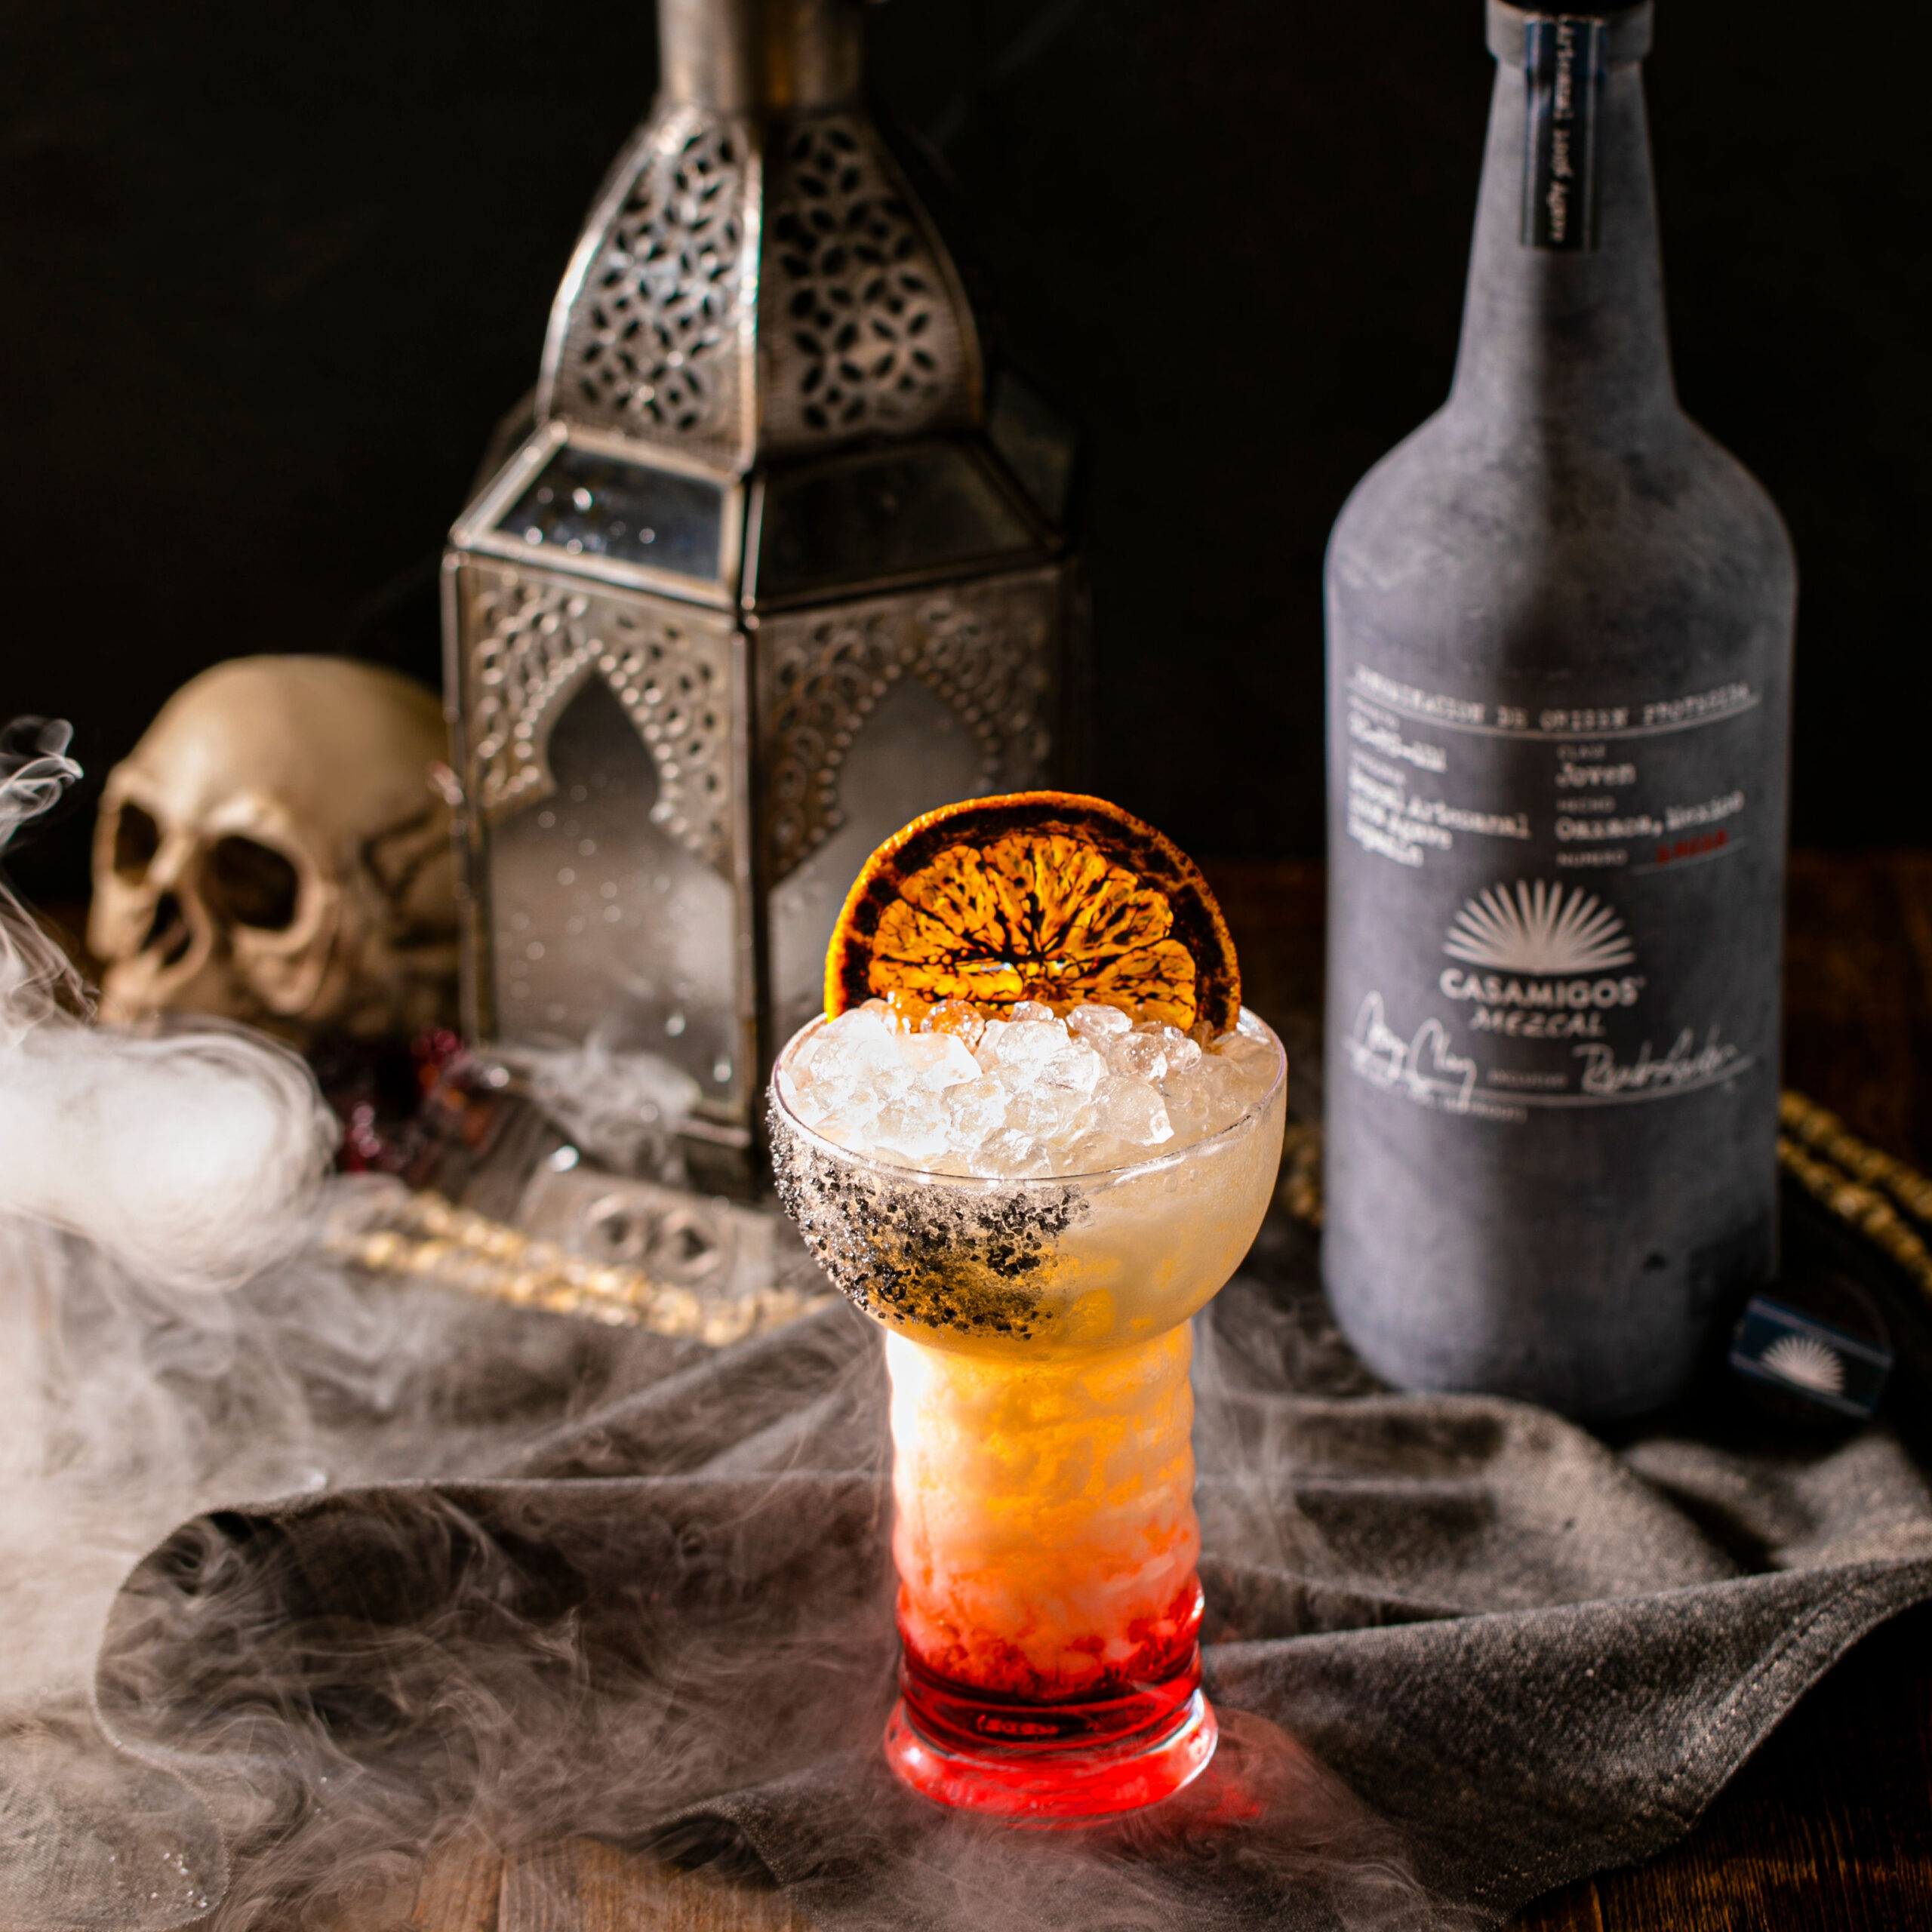 Kooky Casamigos Cocktails And a Spooky Halloween at Crazy Pizza (Pictured Smoky Halloween Colada)